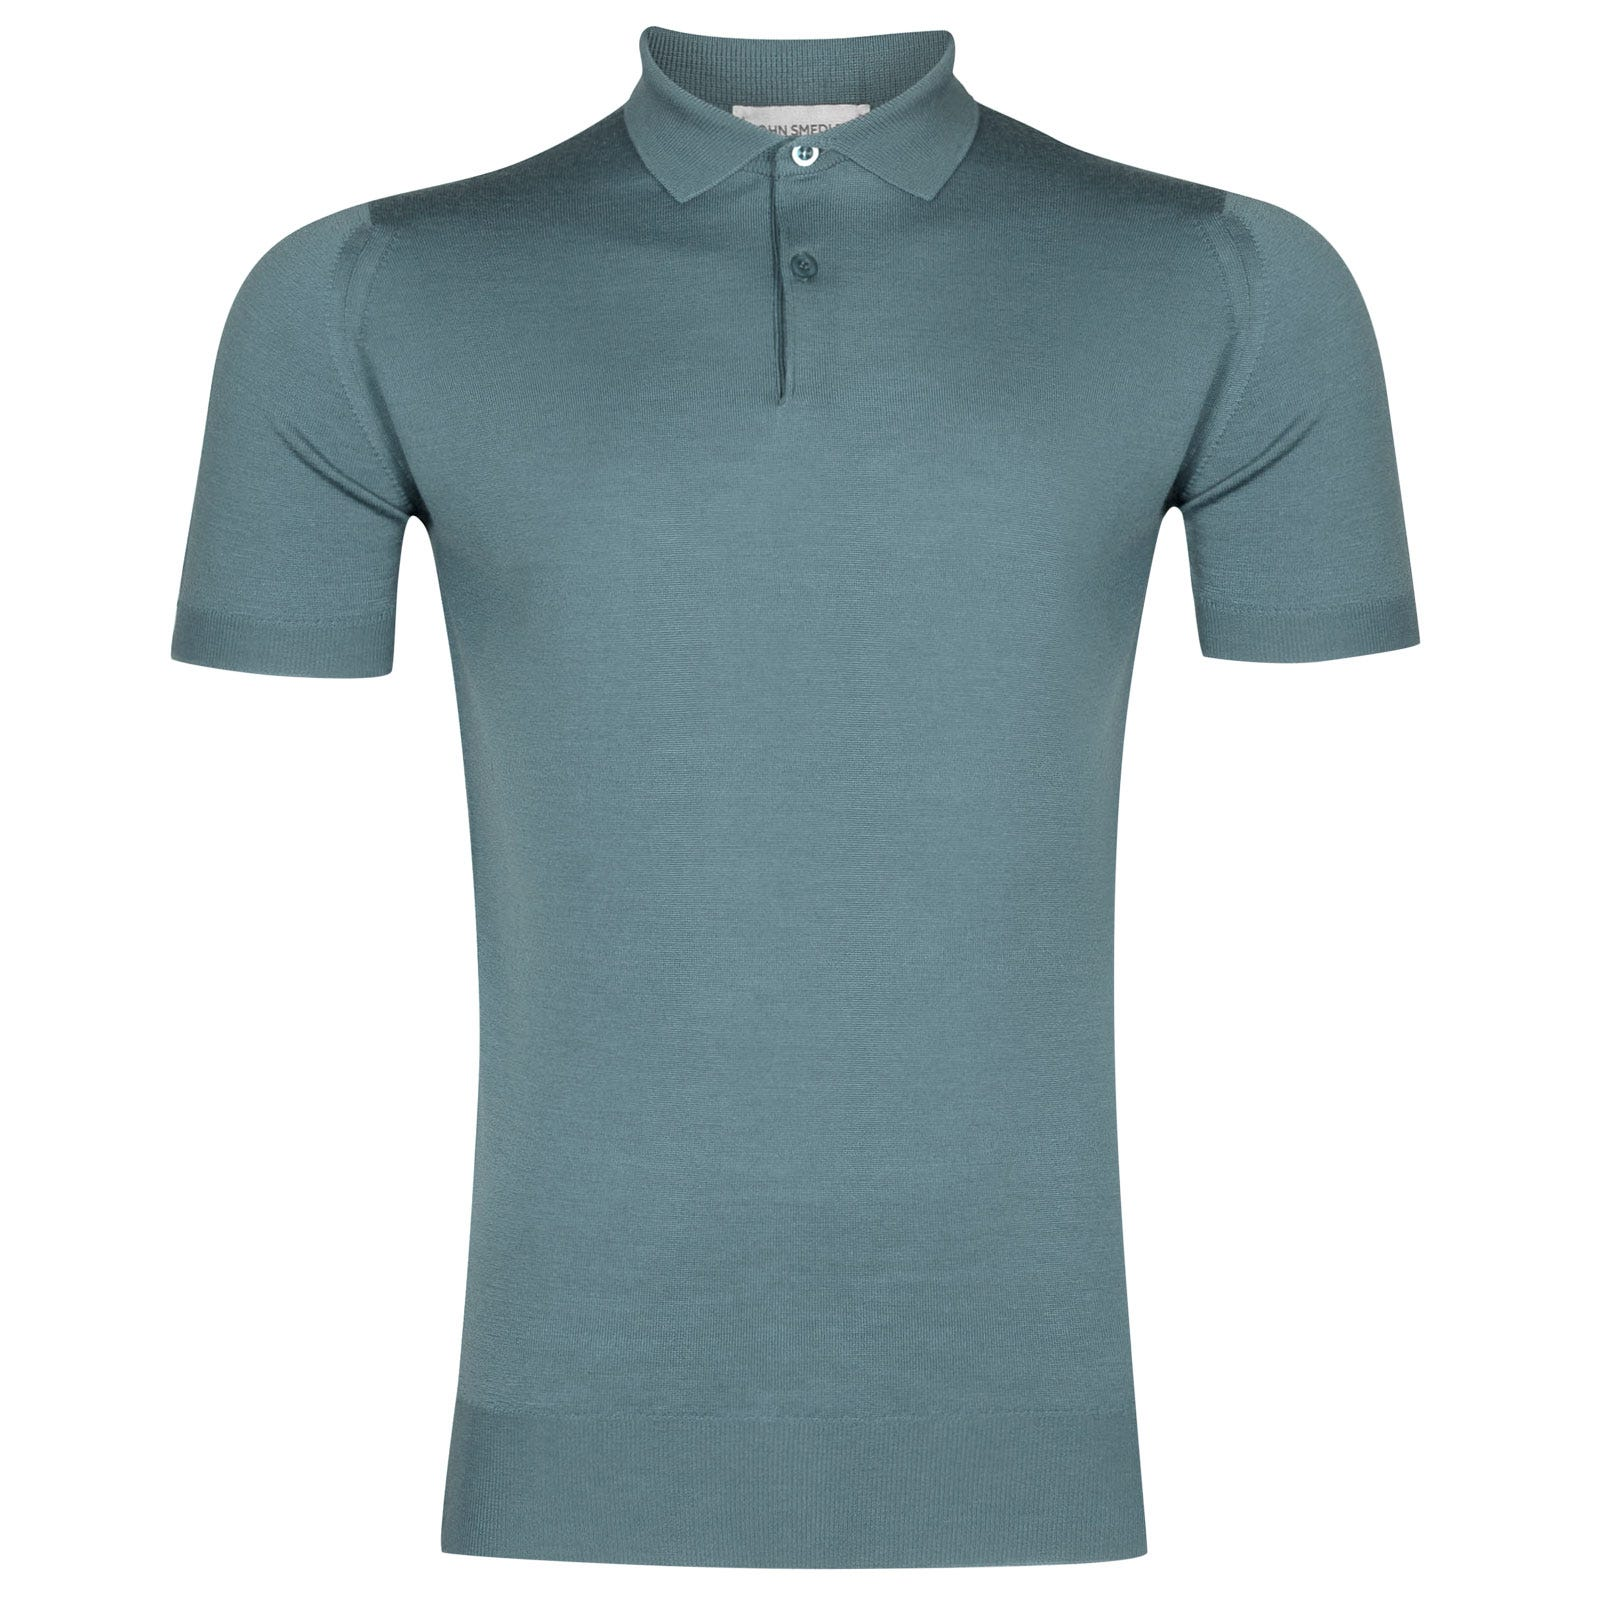 John Smedley payton Merino Wool Shirt in Summit Blue-M